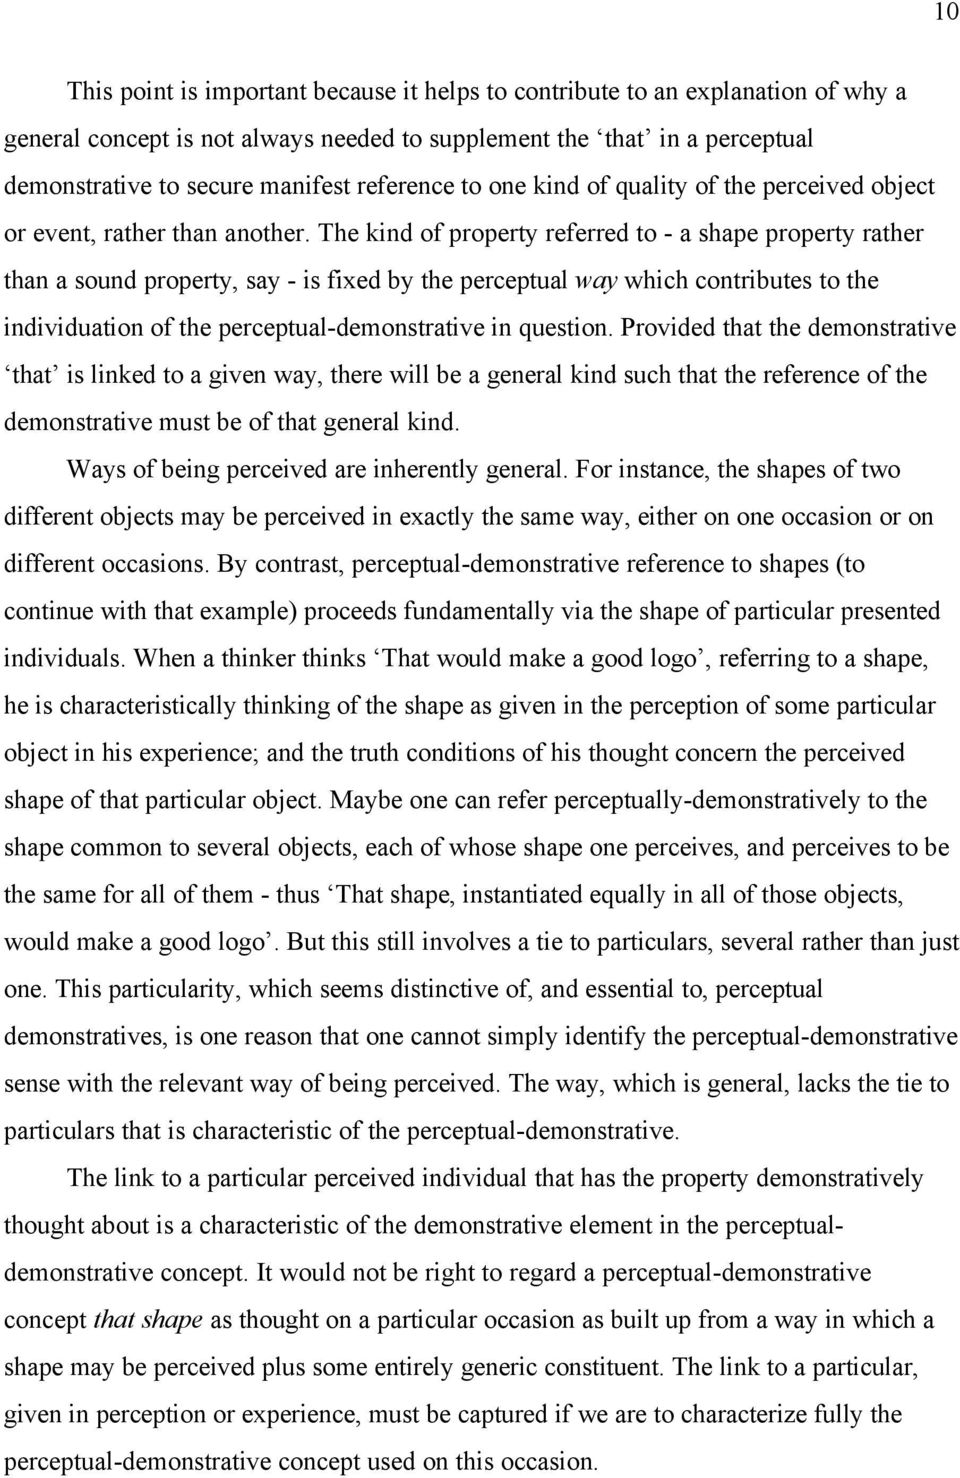 The kind of property referred to - a shape property rather than a sound property, say - is fixed by the perceptual way which contributes to the individuation of the perceptual-demonstrative in